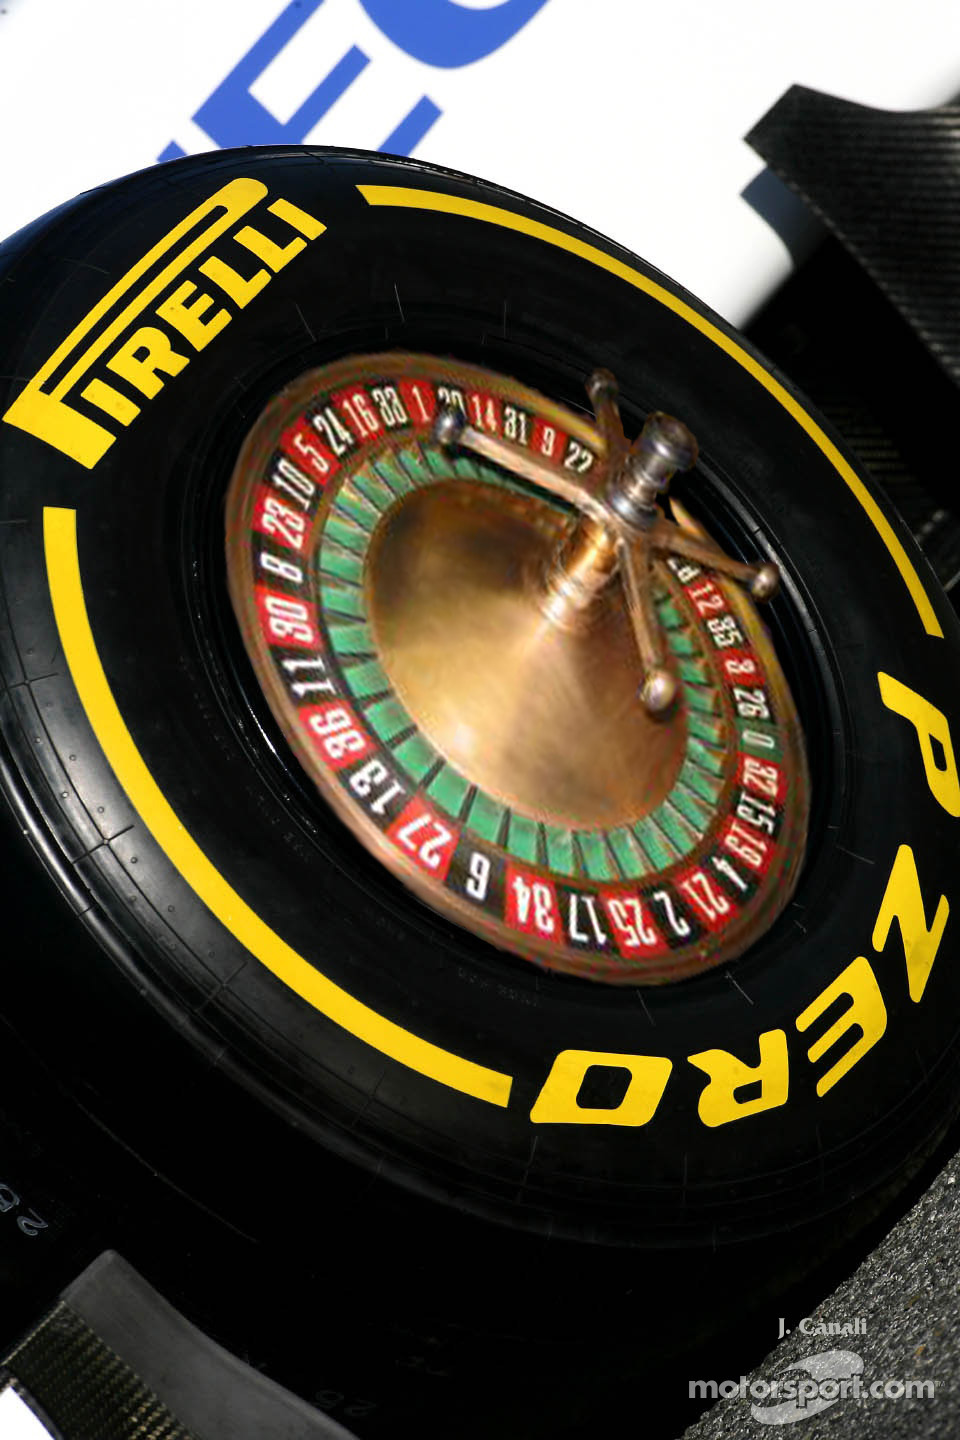 Pirelli Roulette